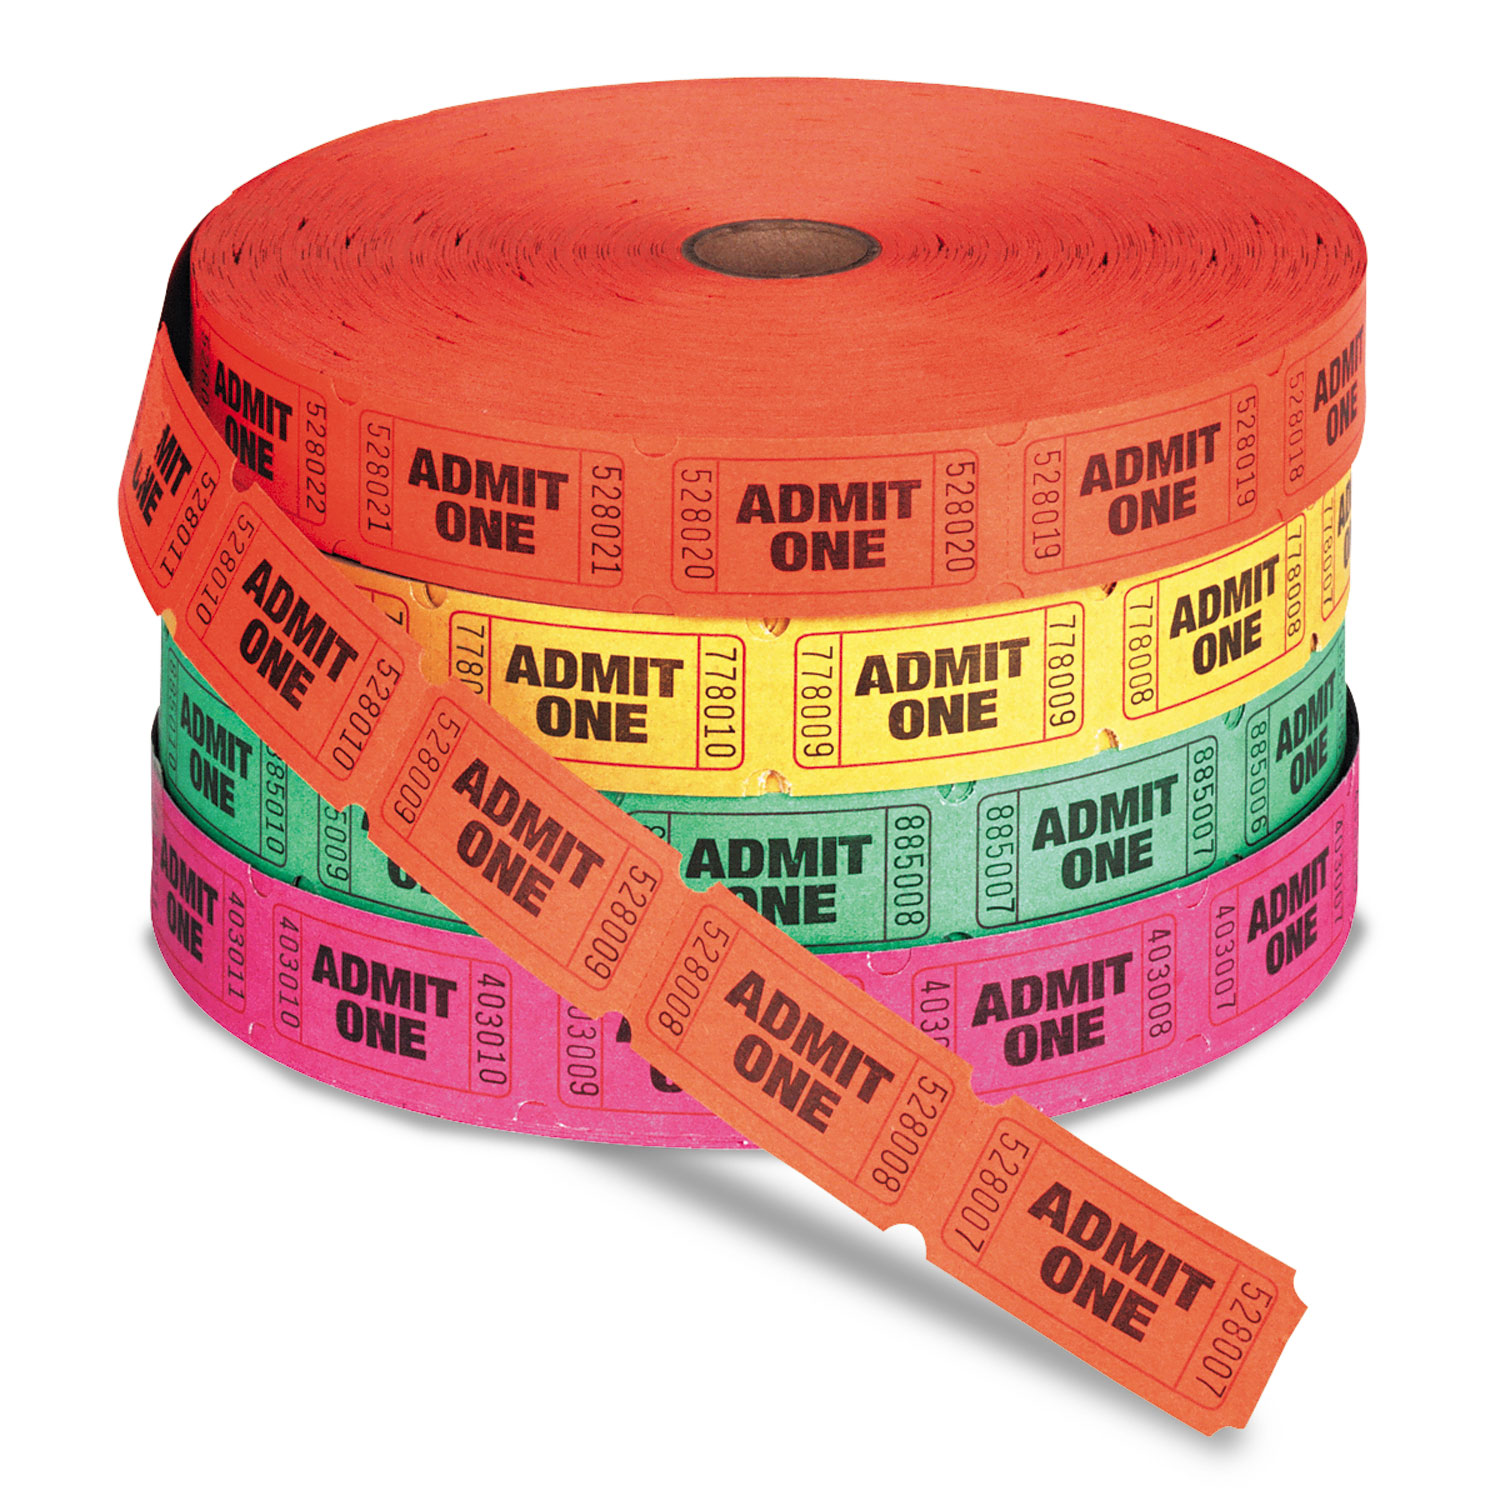 Ticket clipart roll ticket. Admit one single by